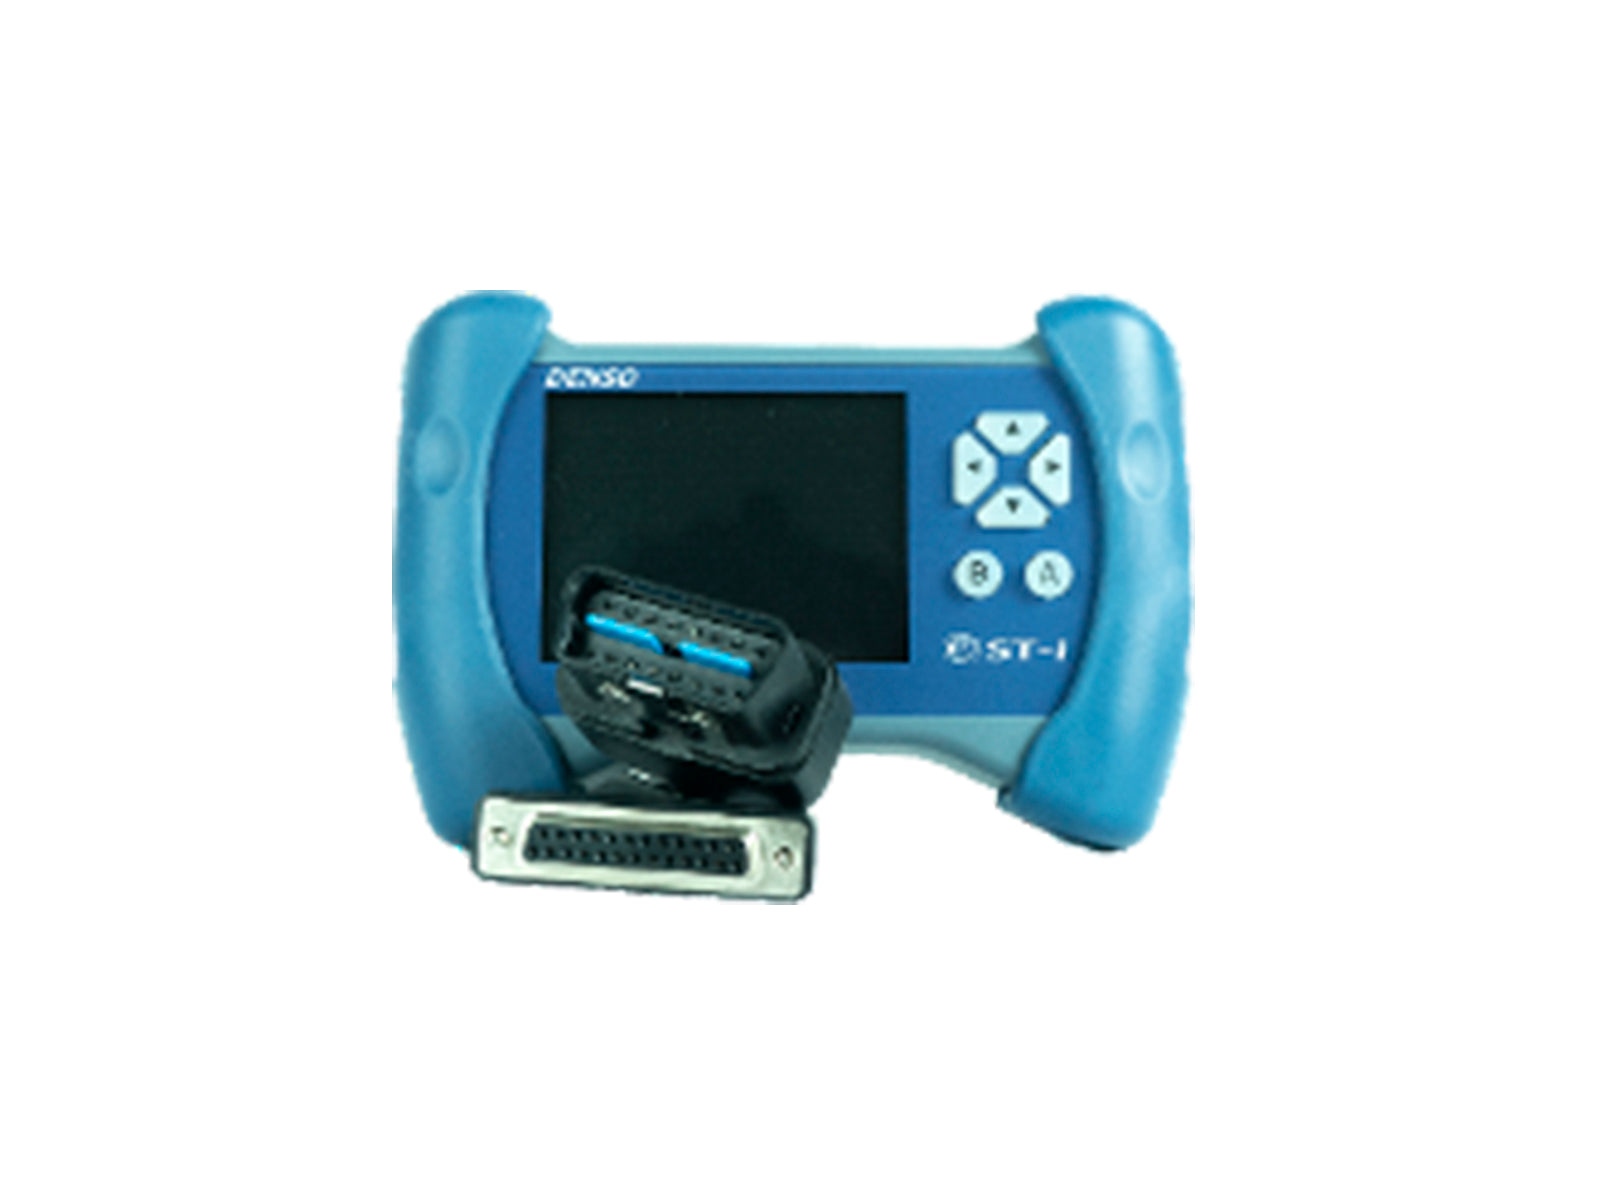 Denso DST-i Vehicle Communication Interface for Honda Acura Kubota